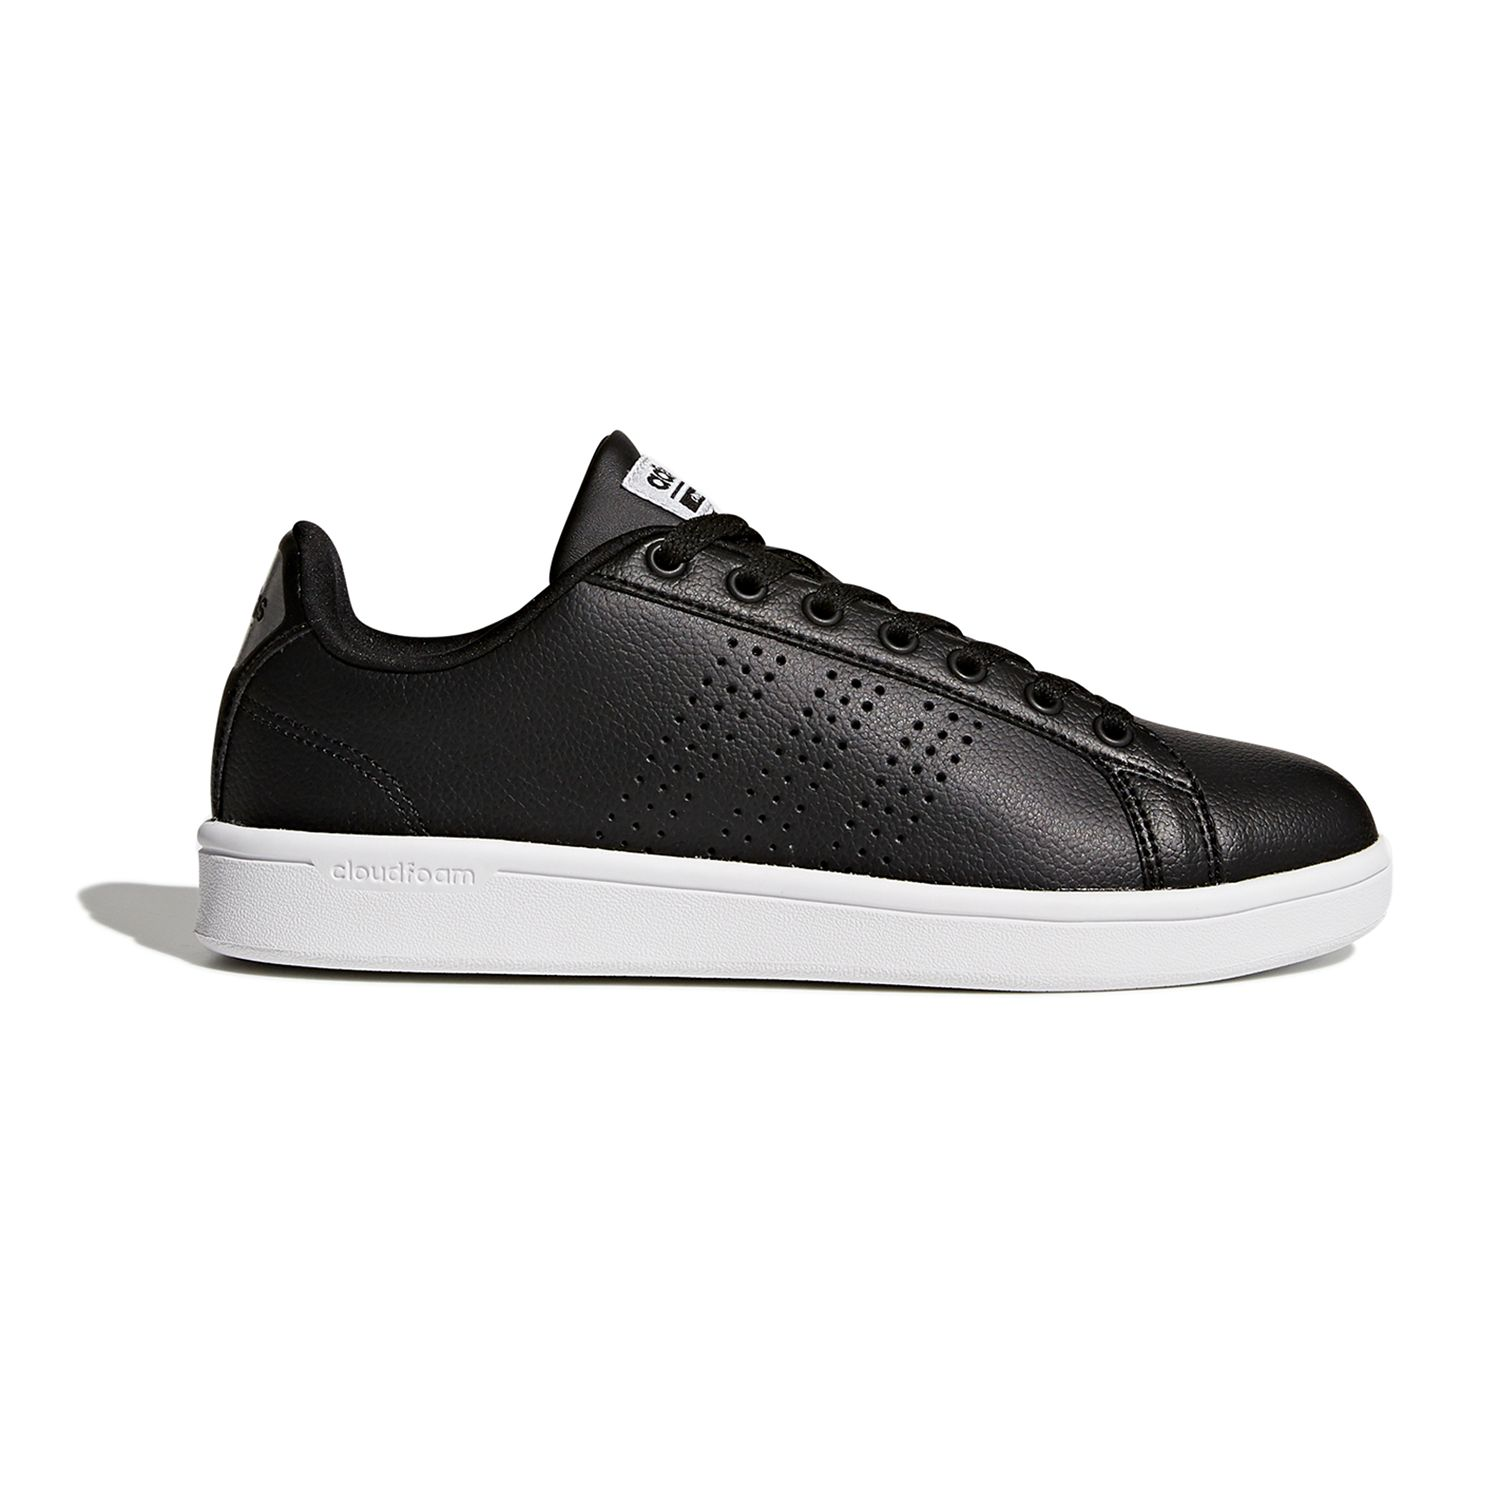 black adidas shoes made out of heam   Défi J arrête, j y gagne! 81651bcc8986